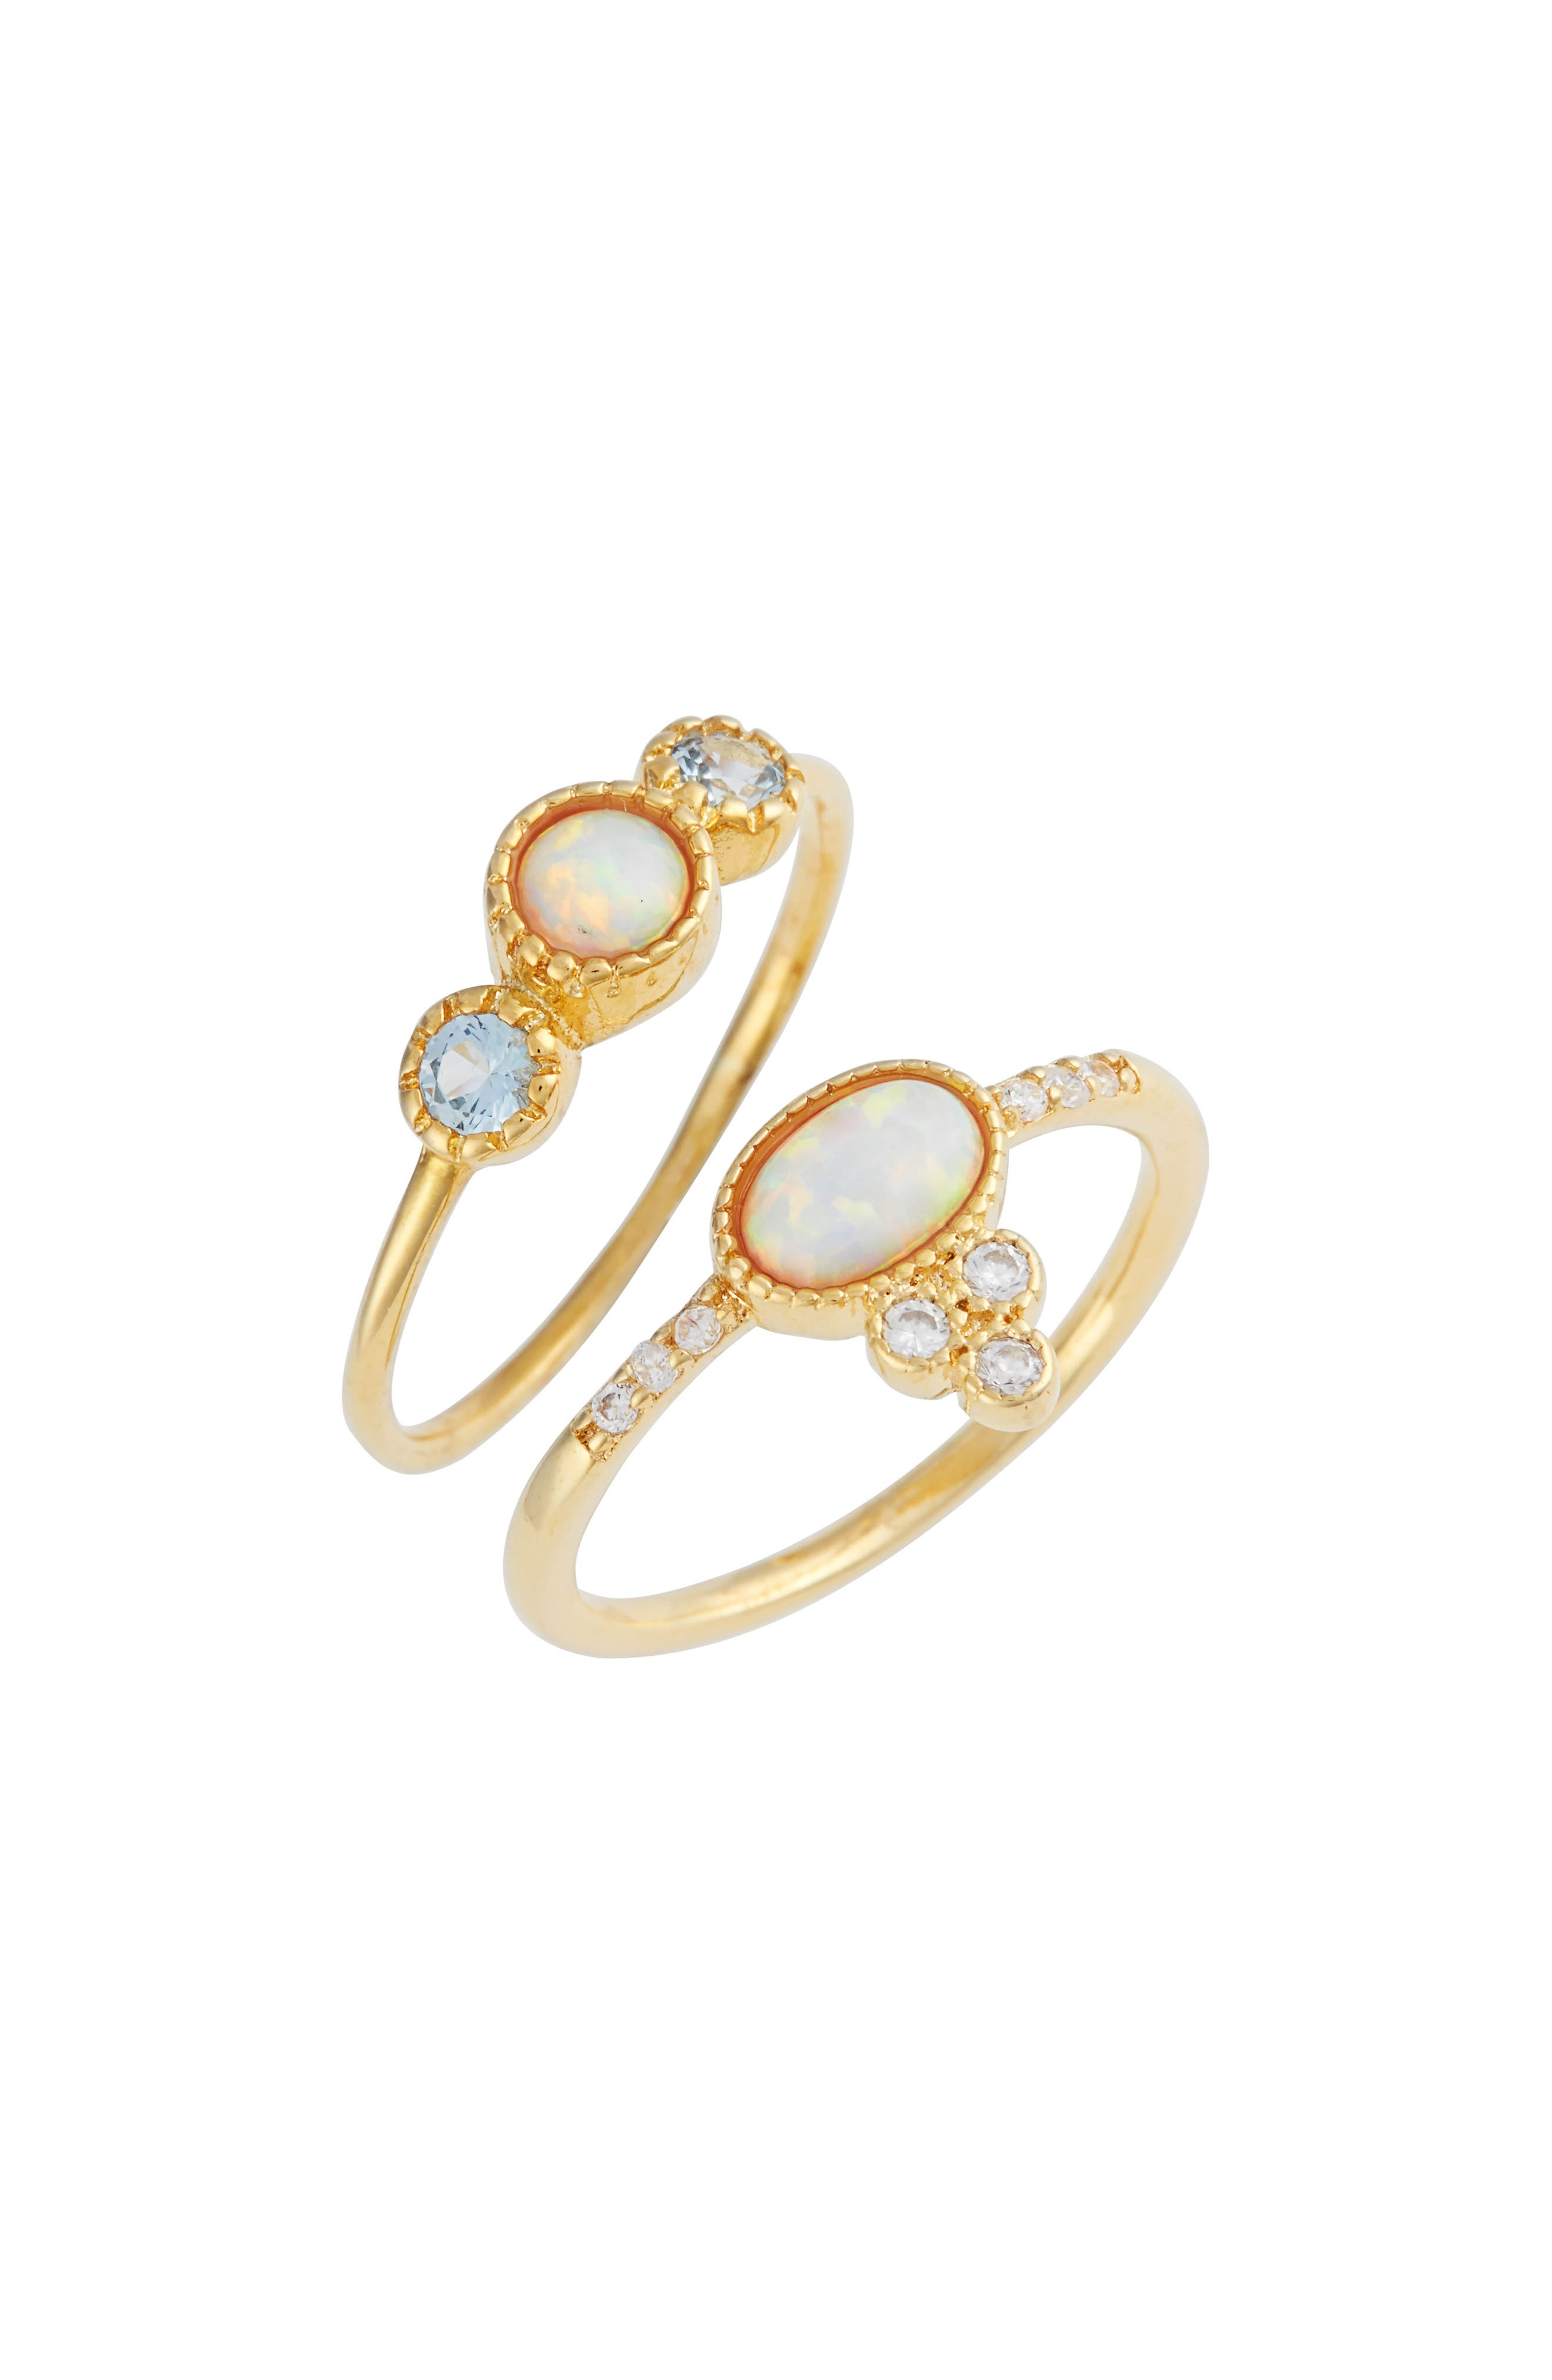 Fabiana Set of 2 Fire Opal & Crystal Rings,                             Main thumbnail 1, color,                             Gold